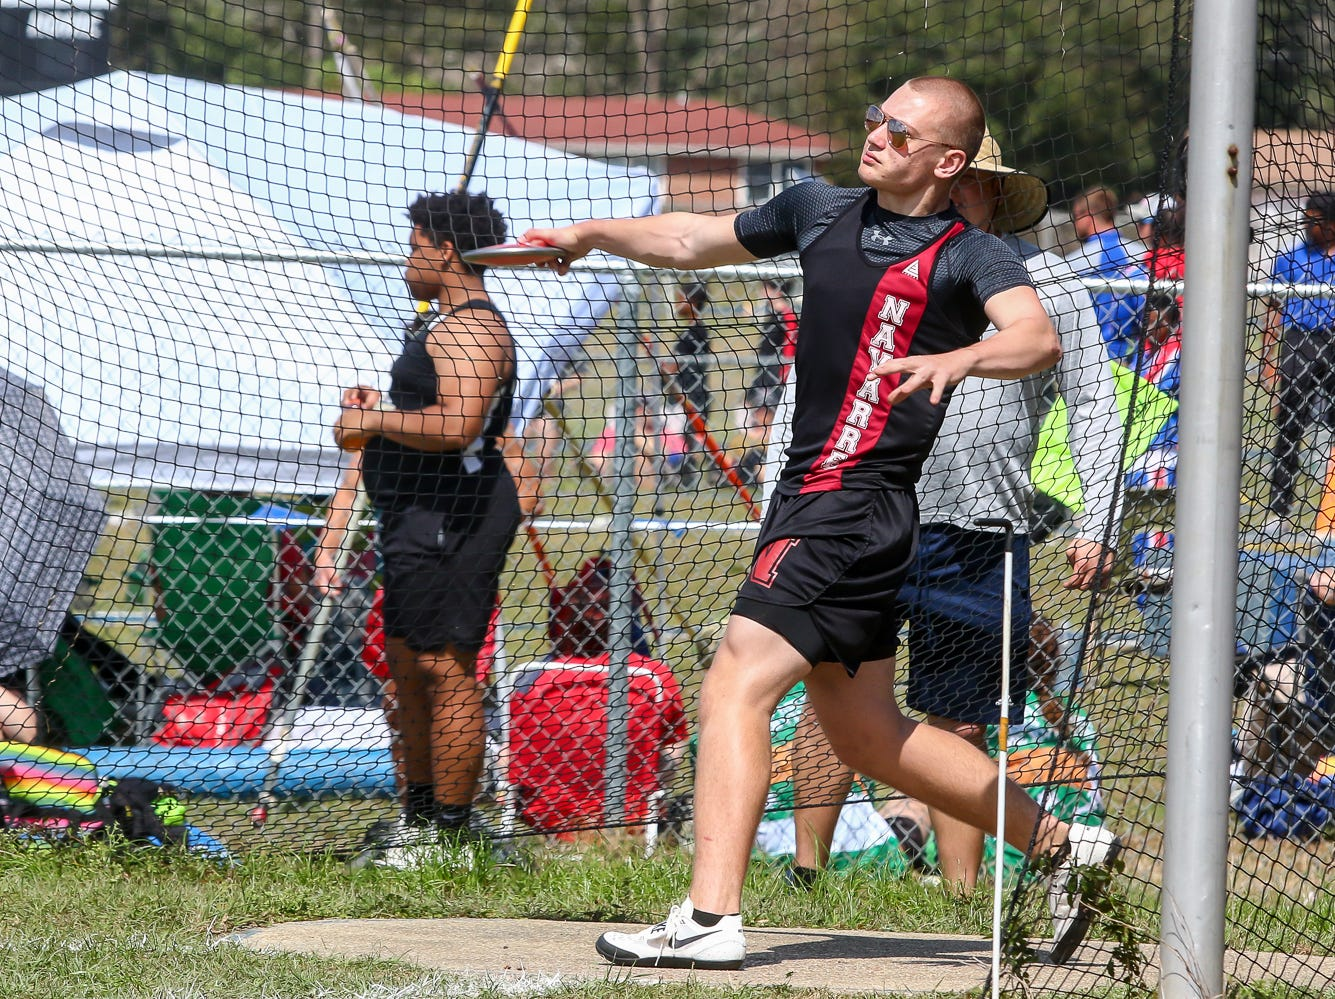 Navarre's Brandon Wangerin competes in the discus throw on Saturday, March 9, 2019, during the Aggie Invitational at Washington High School.